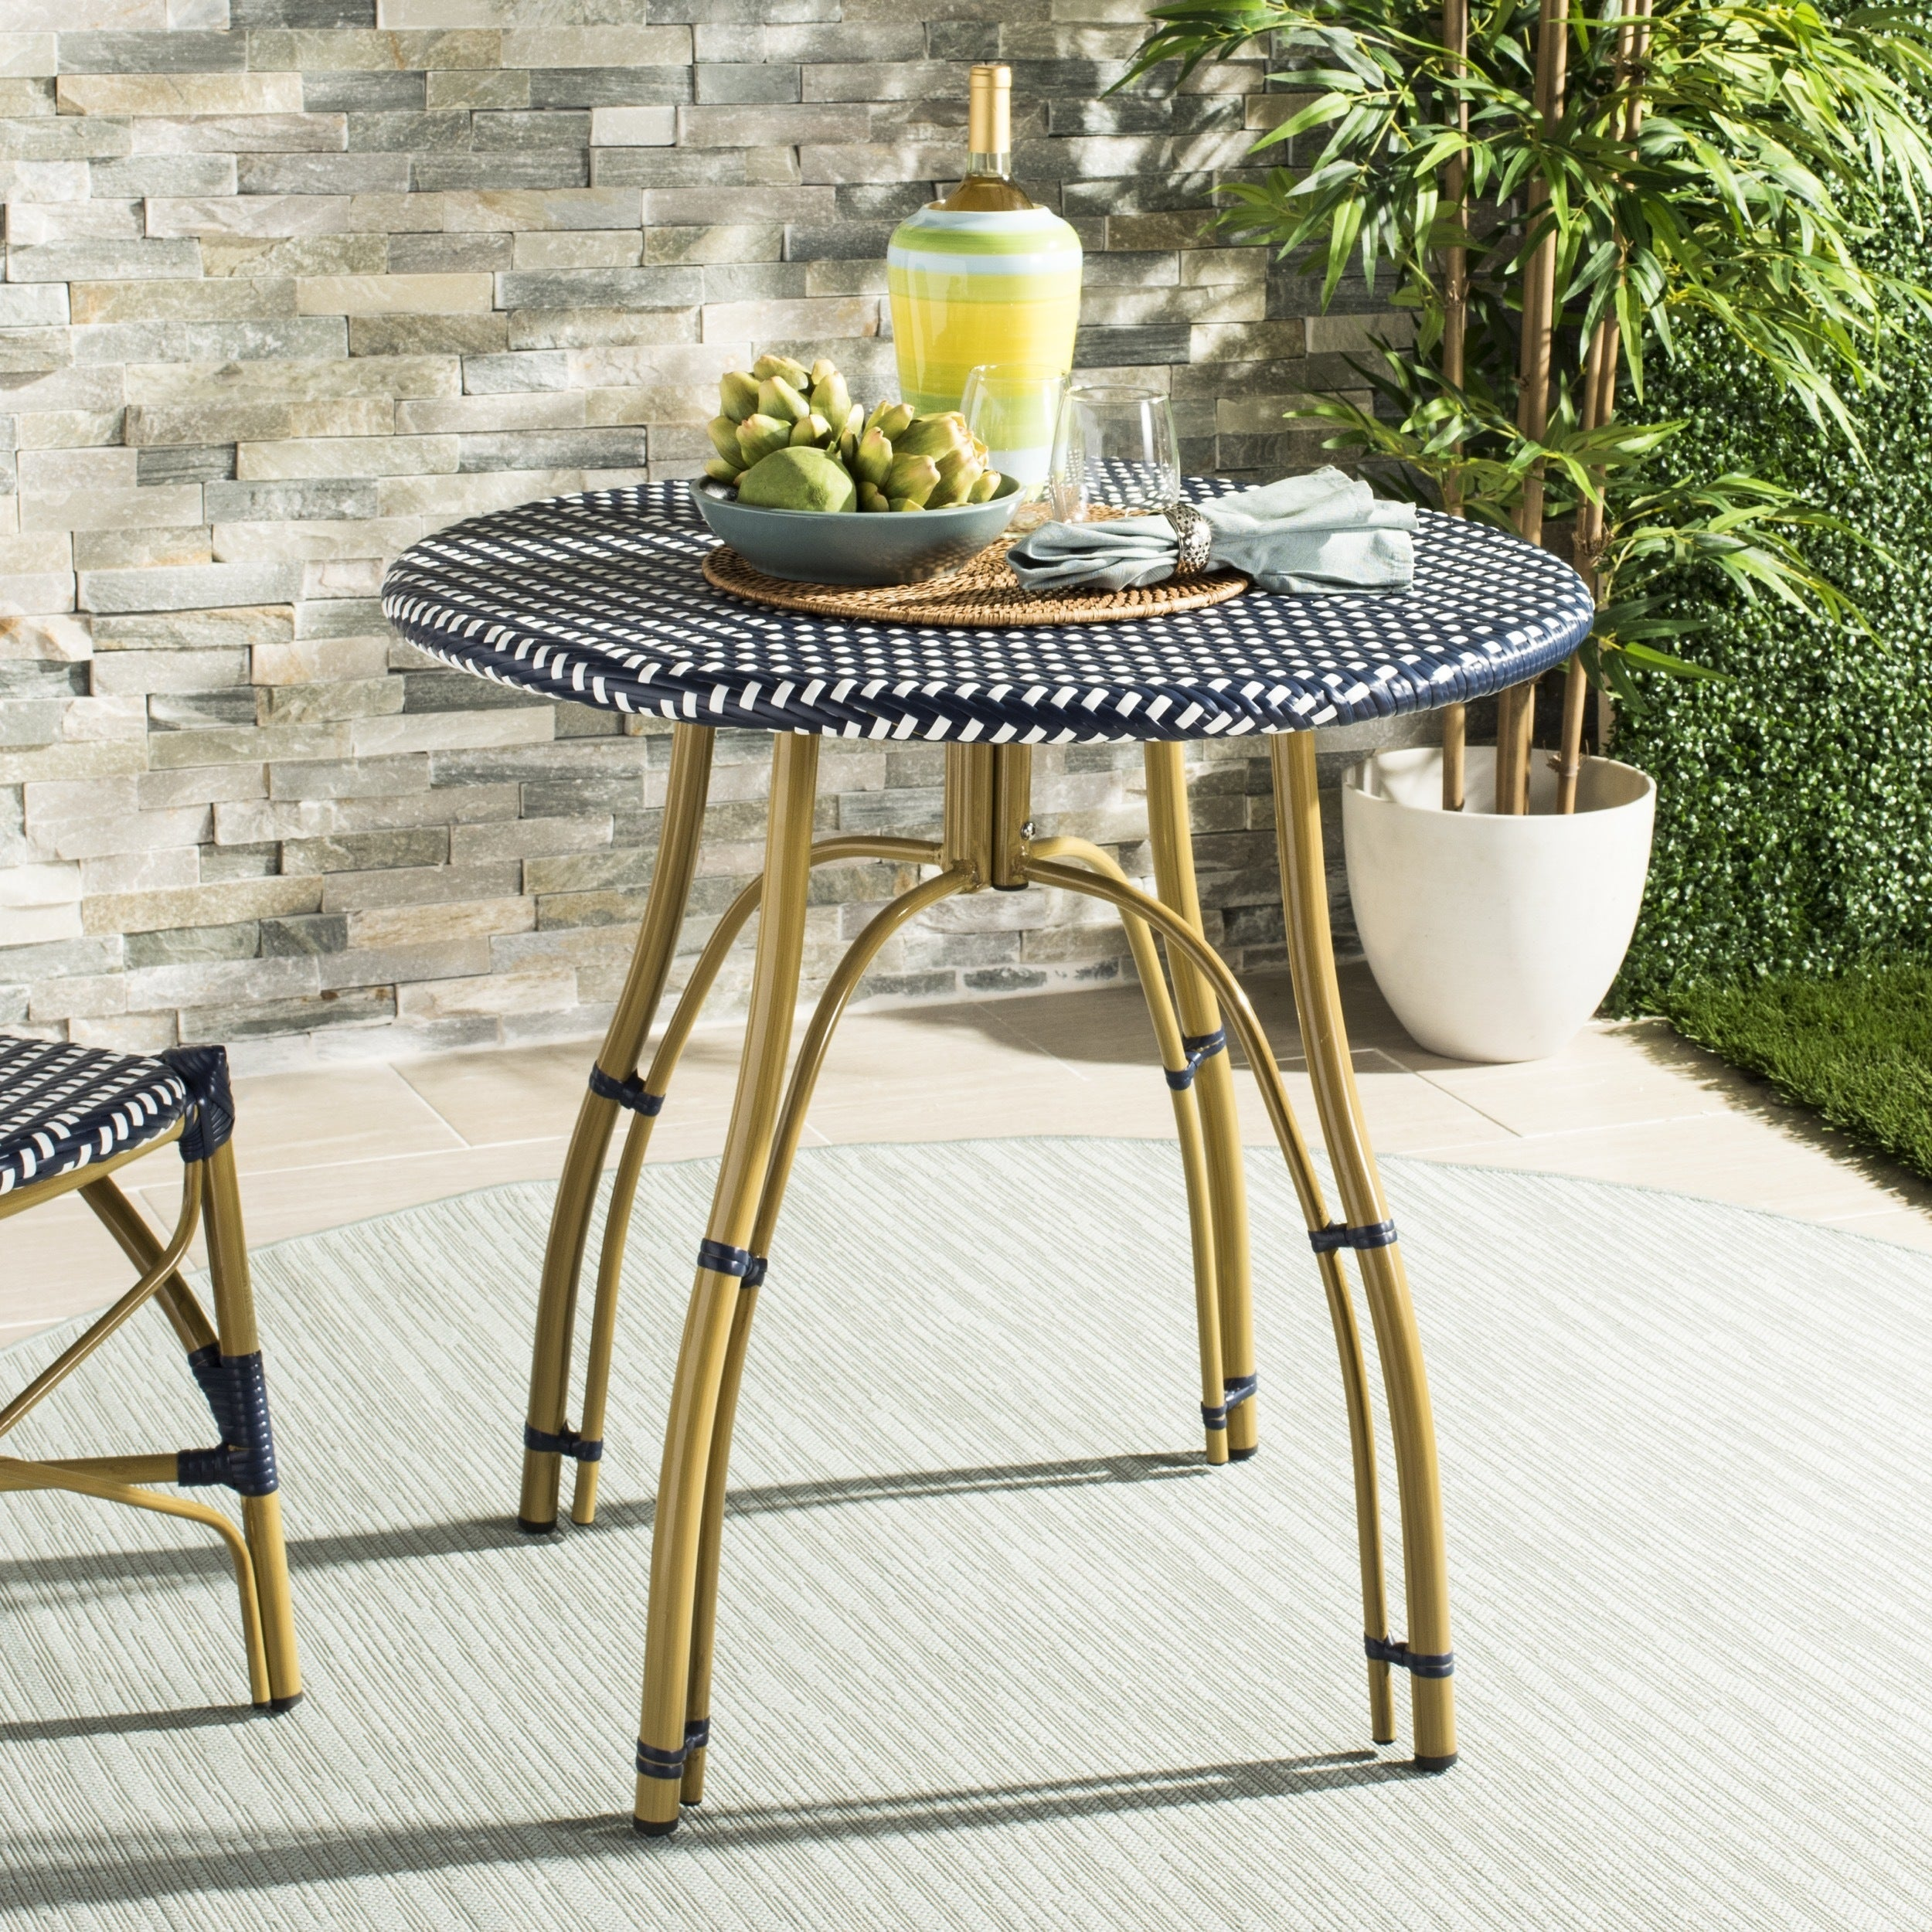 Safavieh Outdoor Living Kylie Navy White Rattan Bistro Table 31 5 X 30